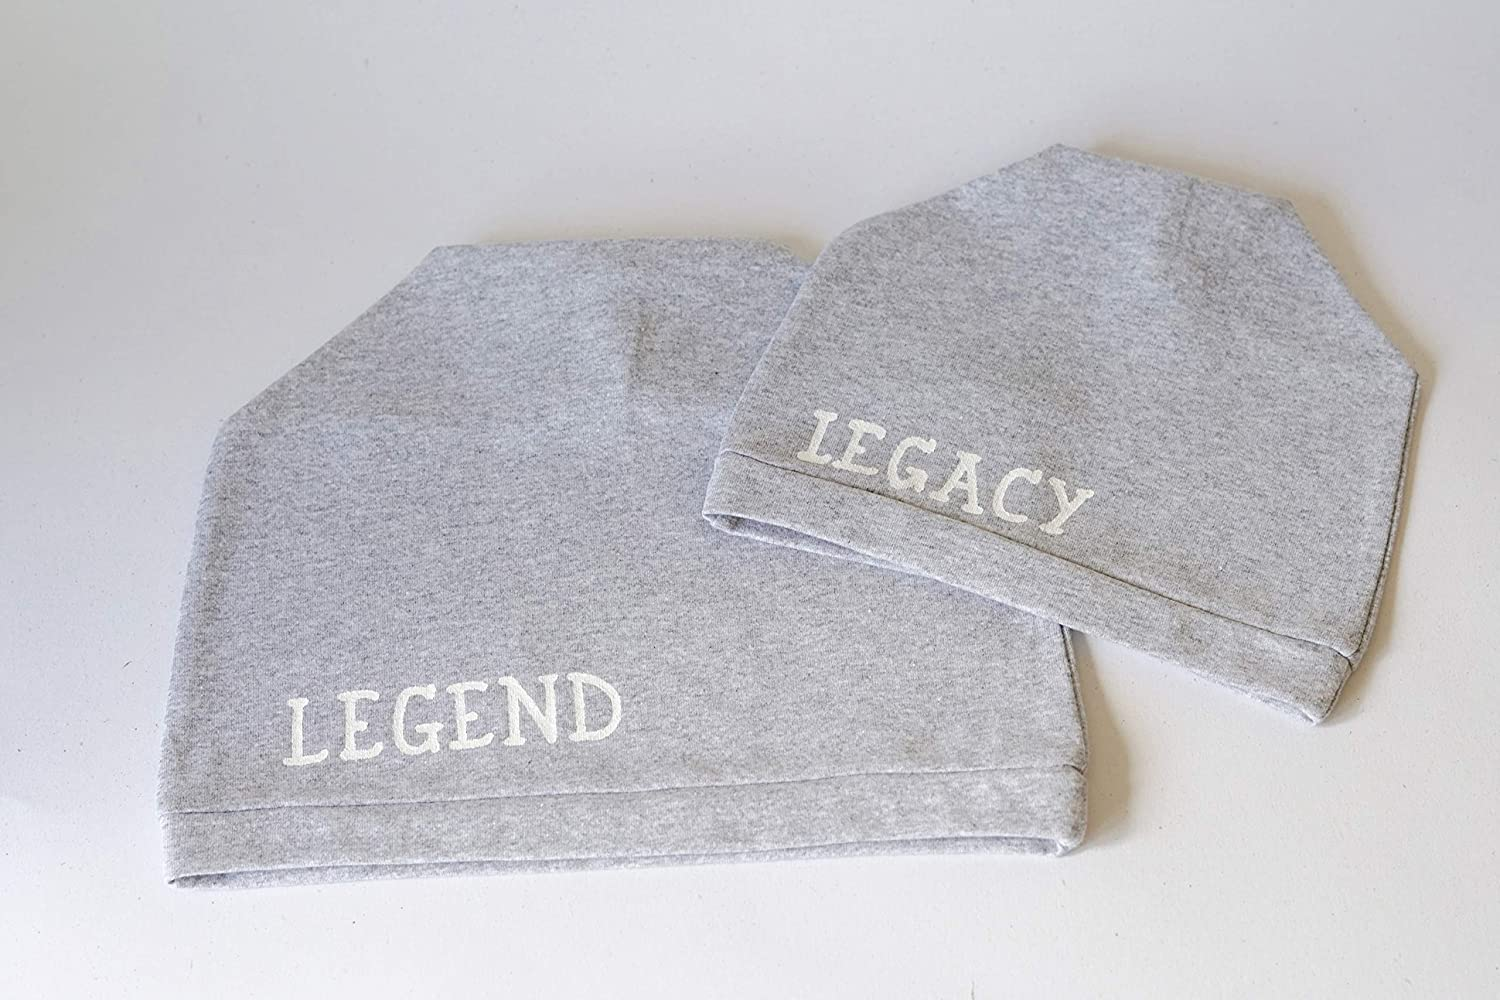 1adadc1b411 Fathers Day Gifts from Son Father Son Matching Beanie Hats Daddy and Me  Outfit Legend and Legacy Gifts Set of 2 Beanies  Amazon.co.uk  Handmade